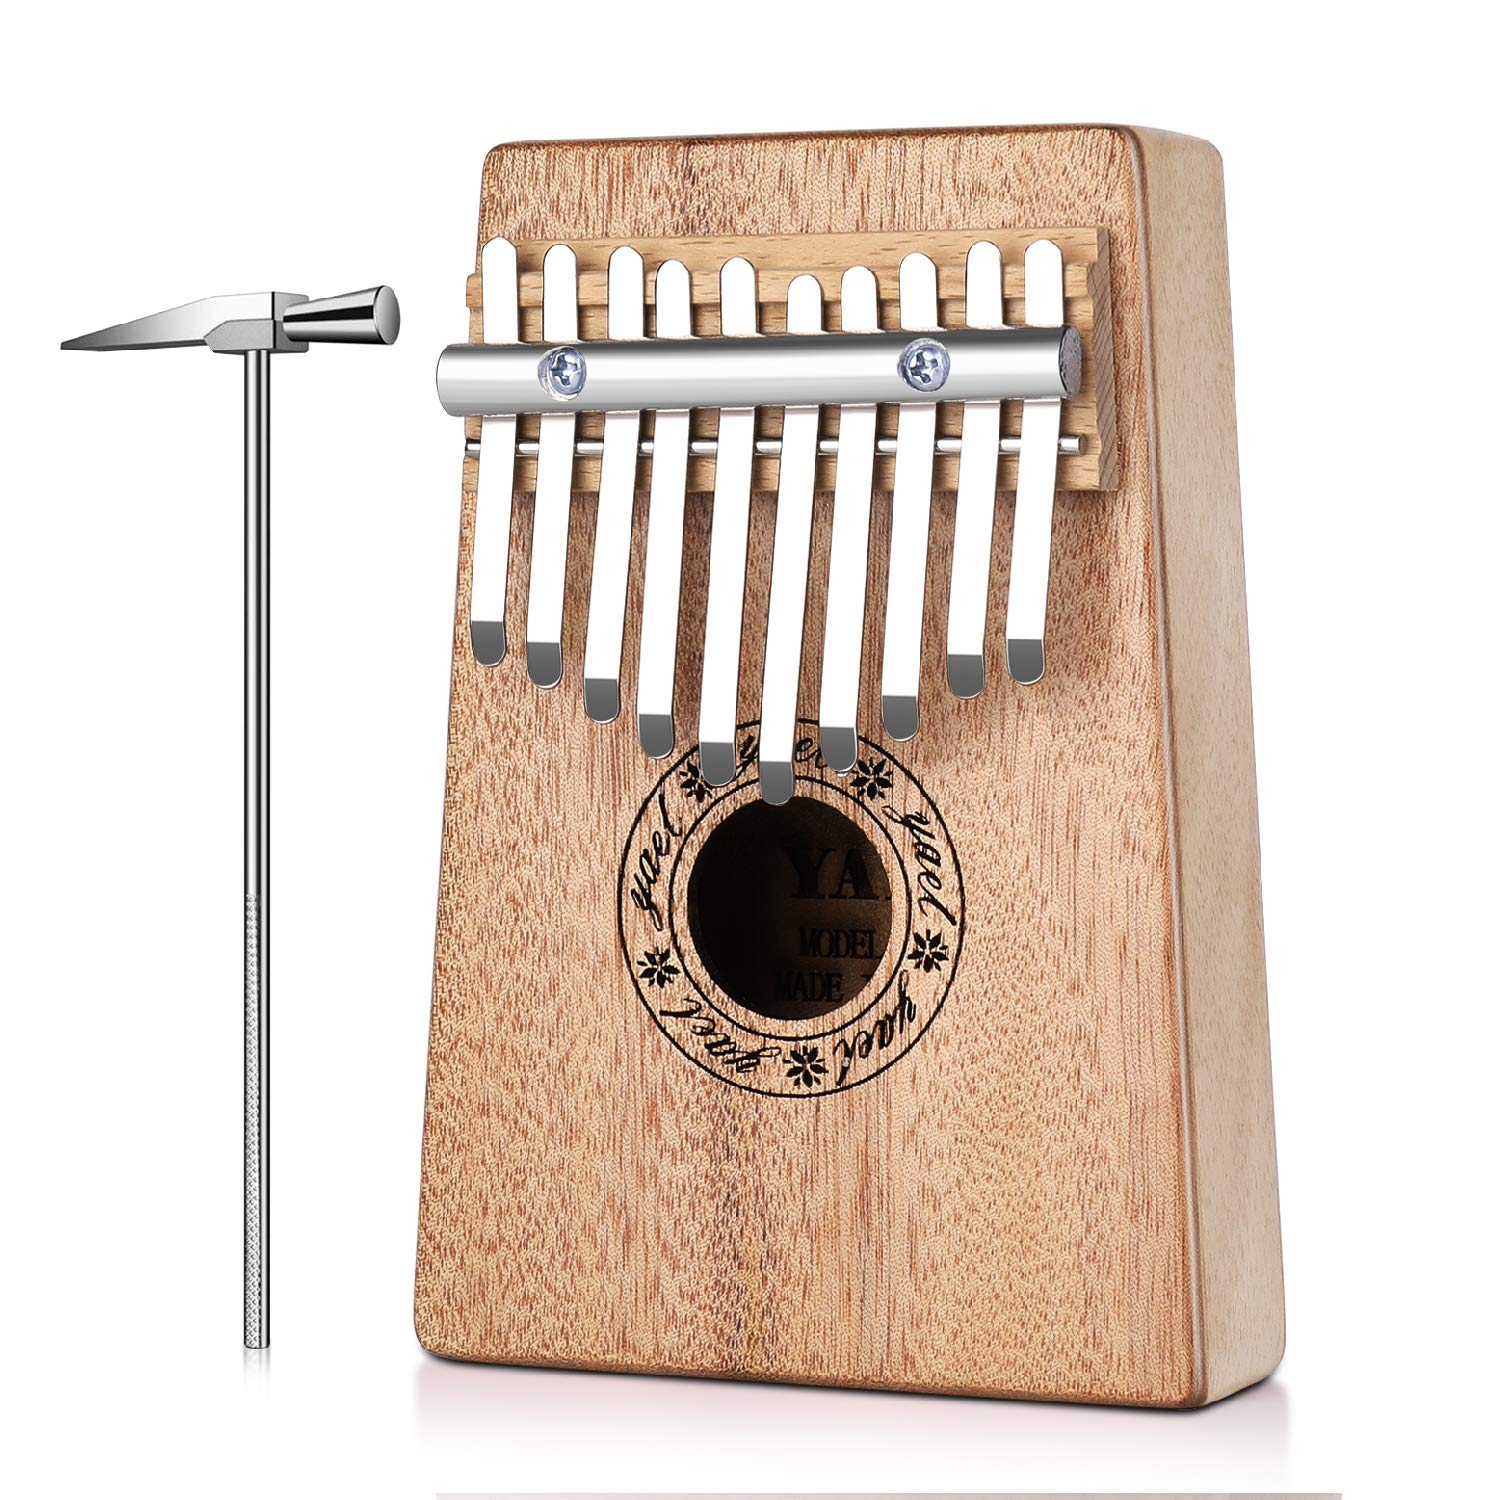 Flexzion Kalimba 10 Keys Thumb Piano, Mbira 10 Tone Finger Piano Portable African Musical Instrument with Musical Scorebook/Learning Booklet, Tune Hammer, Storage Carrying Bag